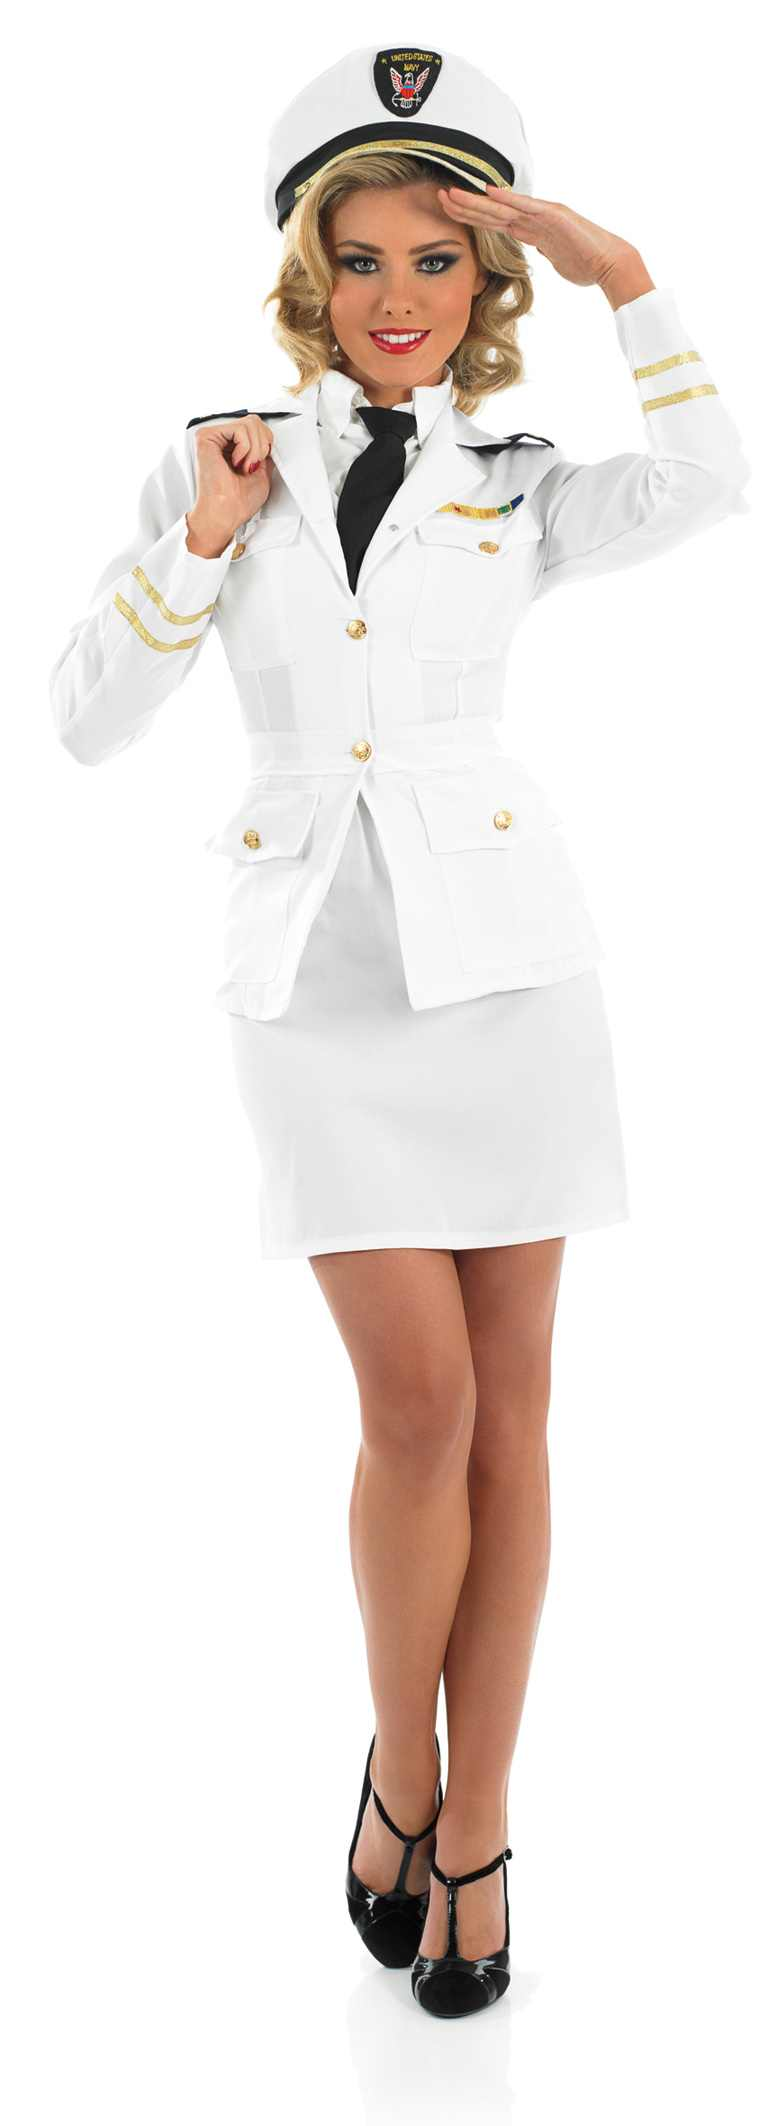 Ladies 40S Lady Naval Officer Costume for WWII War Time Fancy Dress Up Outfits